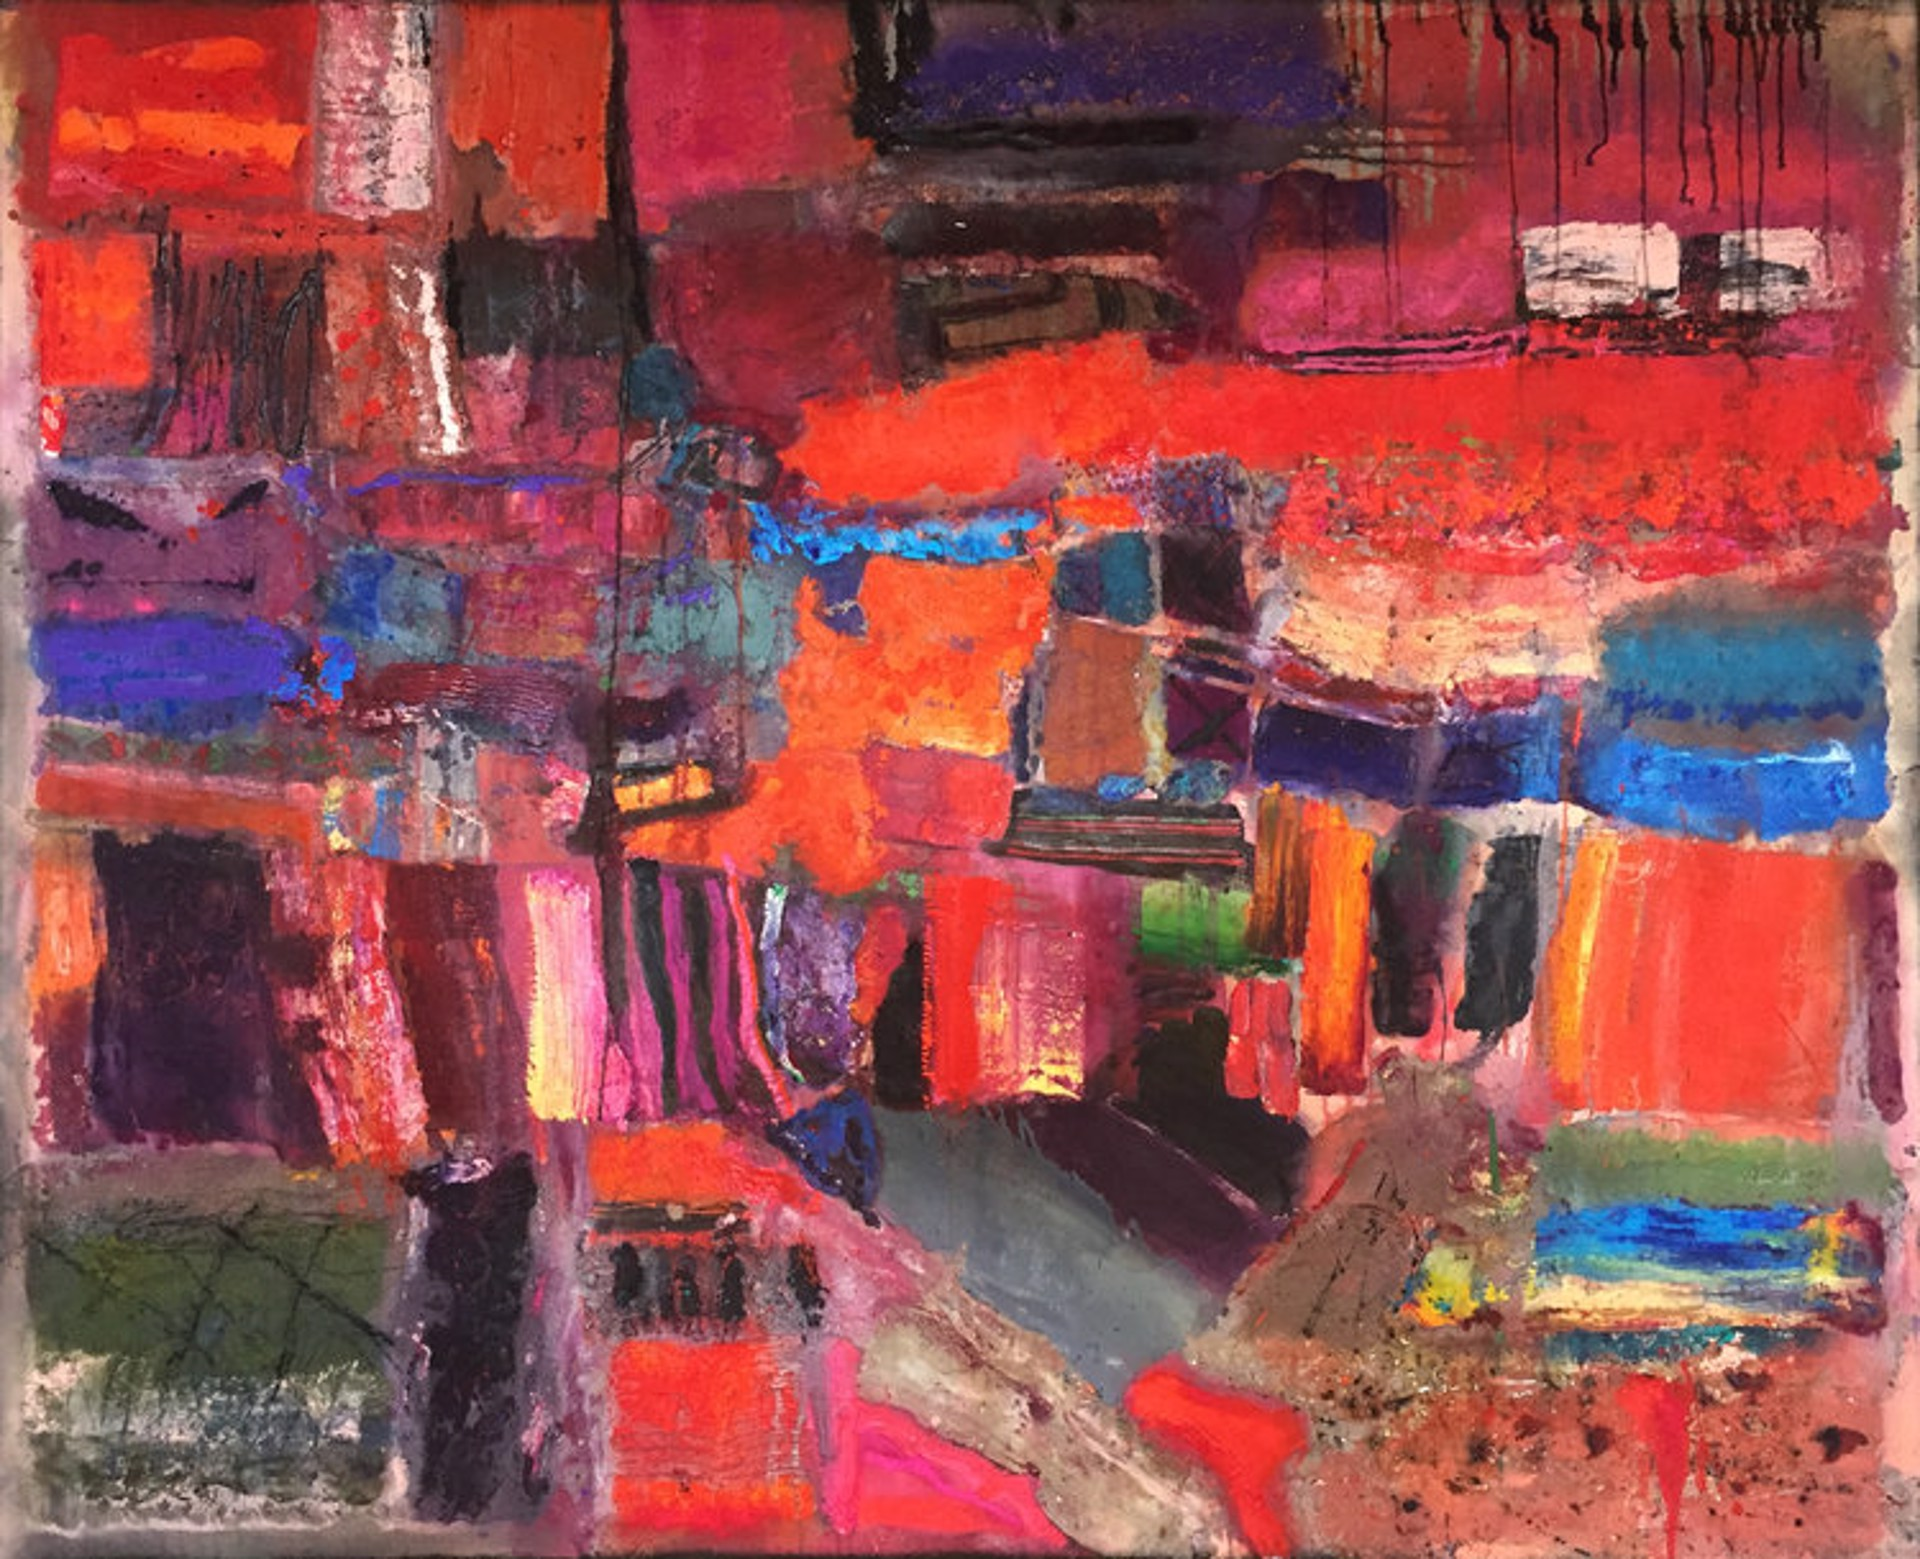 Abstract III by Dick Jemison